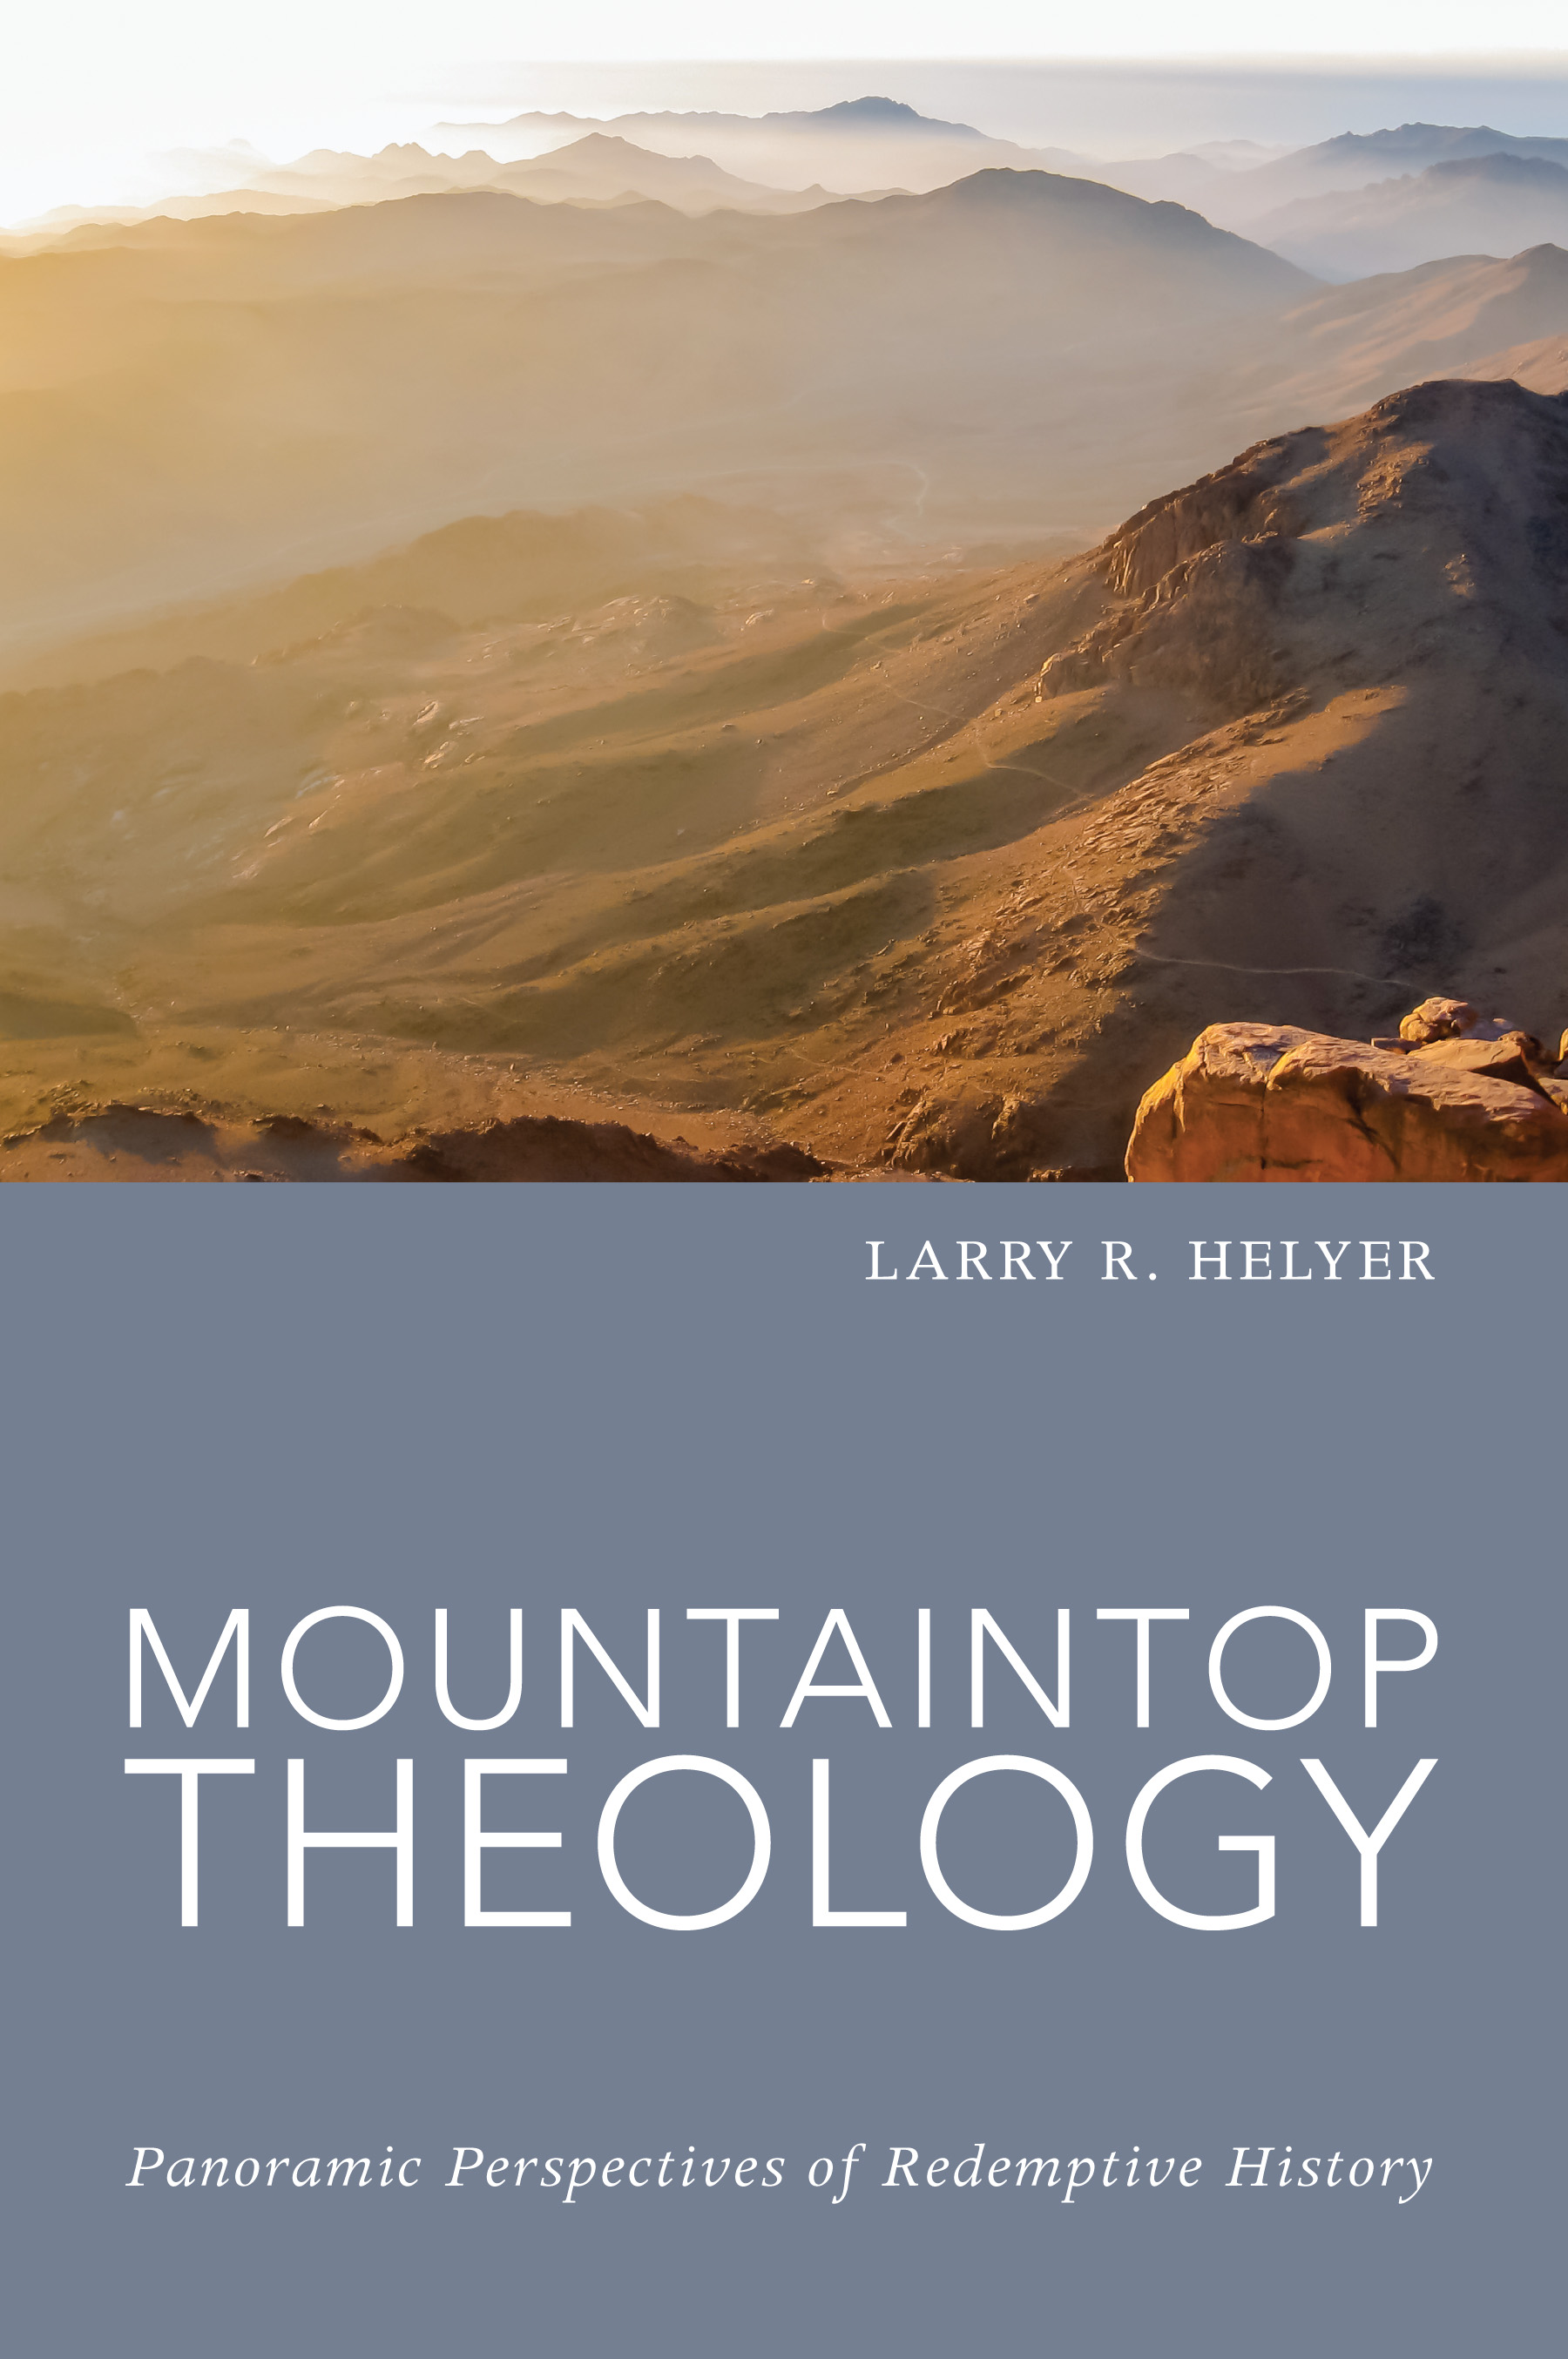 Mountaintop Theology: Panoramic Perspectives of Redemptive History